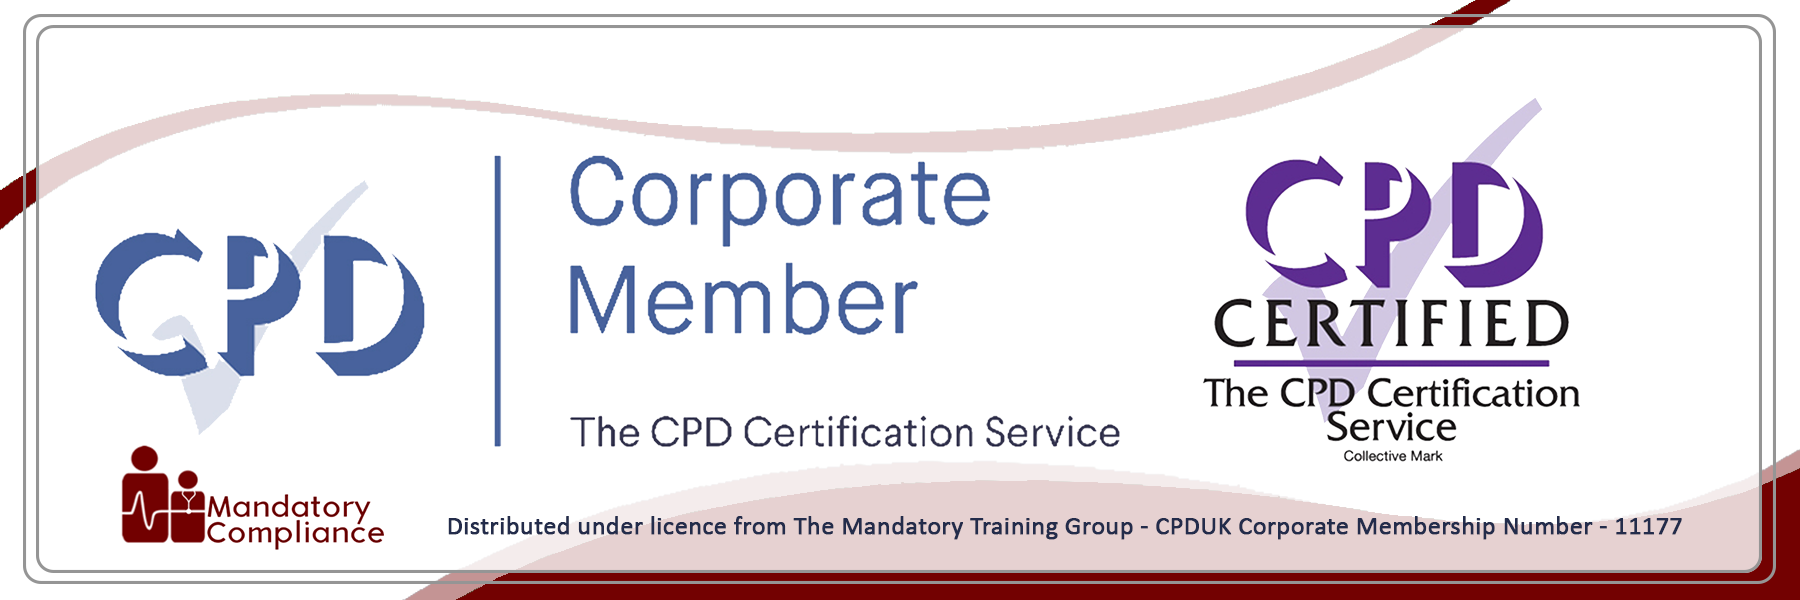 Care Certificate Standard 3 - Train the Trainer - The Mandatory Compliance UK -